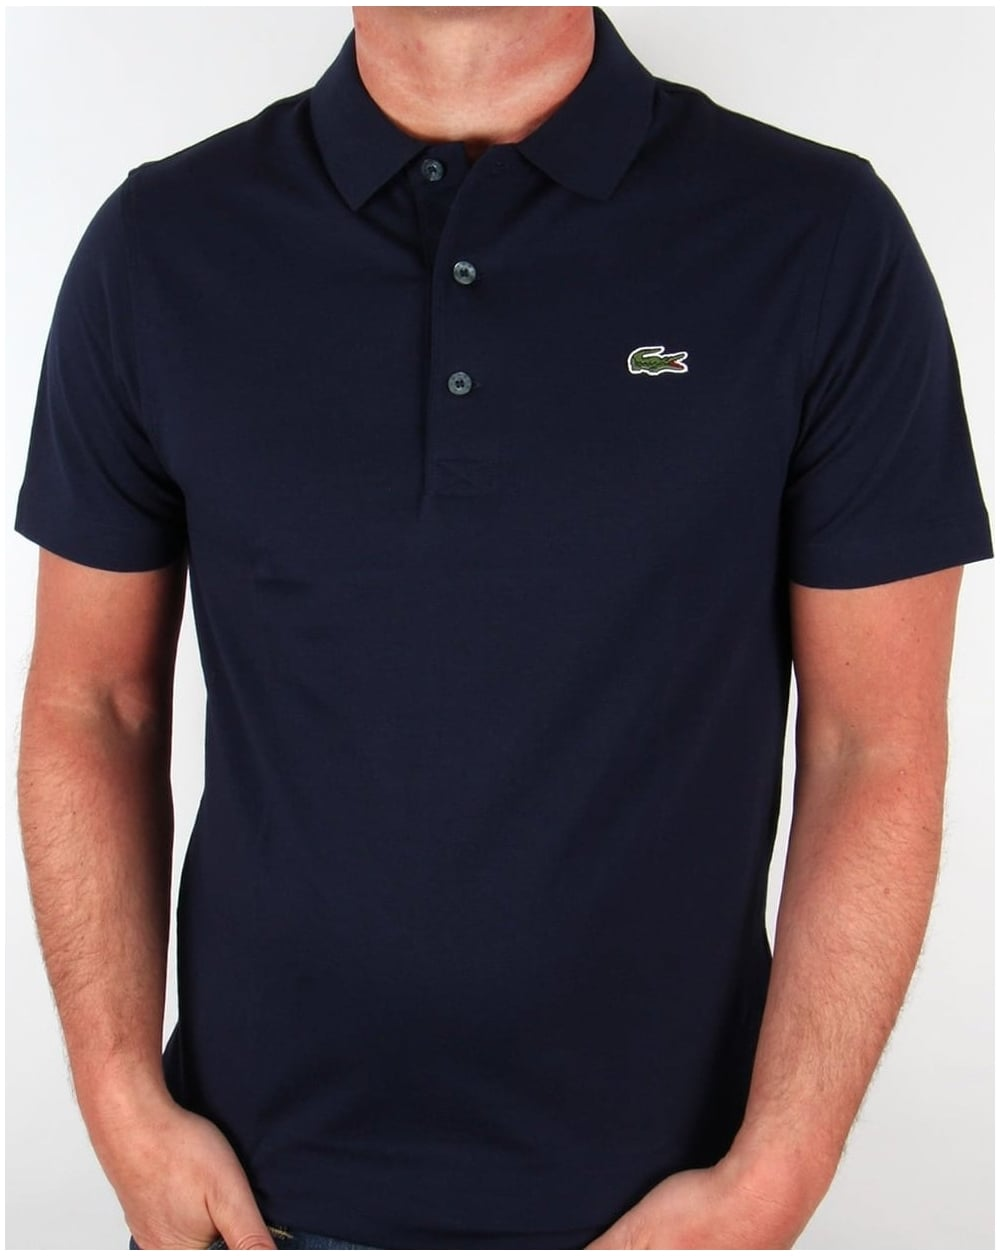 4a25a1d82f6769 Lacoste Short Sleeve Polo Shirt Navy